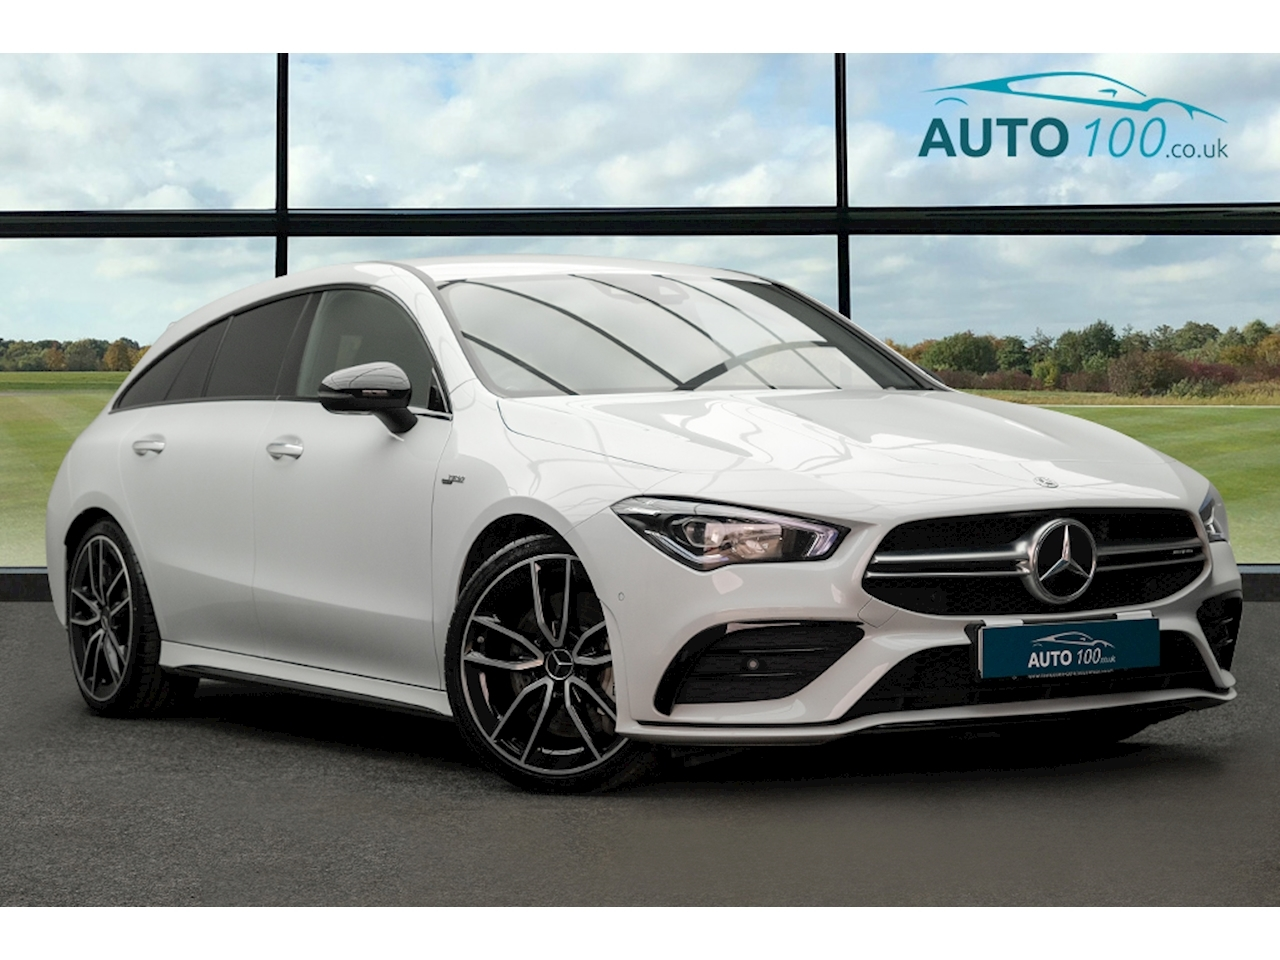 Mercedes-Benz 2.0 CLA35 AMG (Premium) Shooting Brake 5dr Petrol 7G-DCT 4MATIC (s/s) (306 ps)